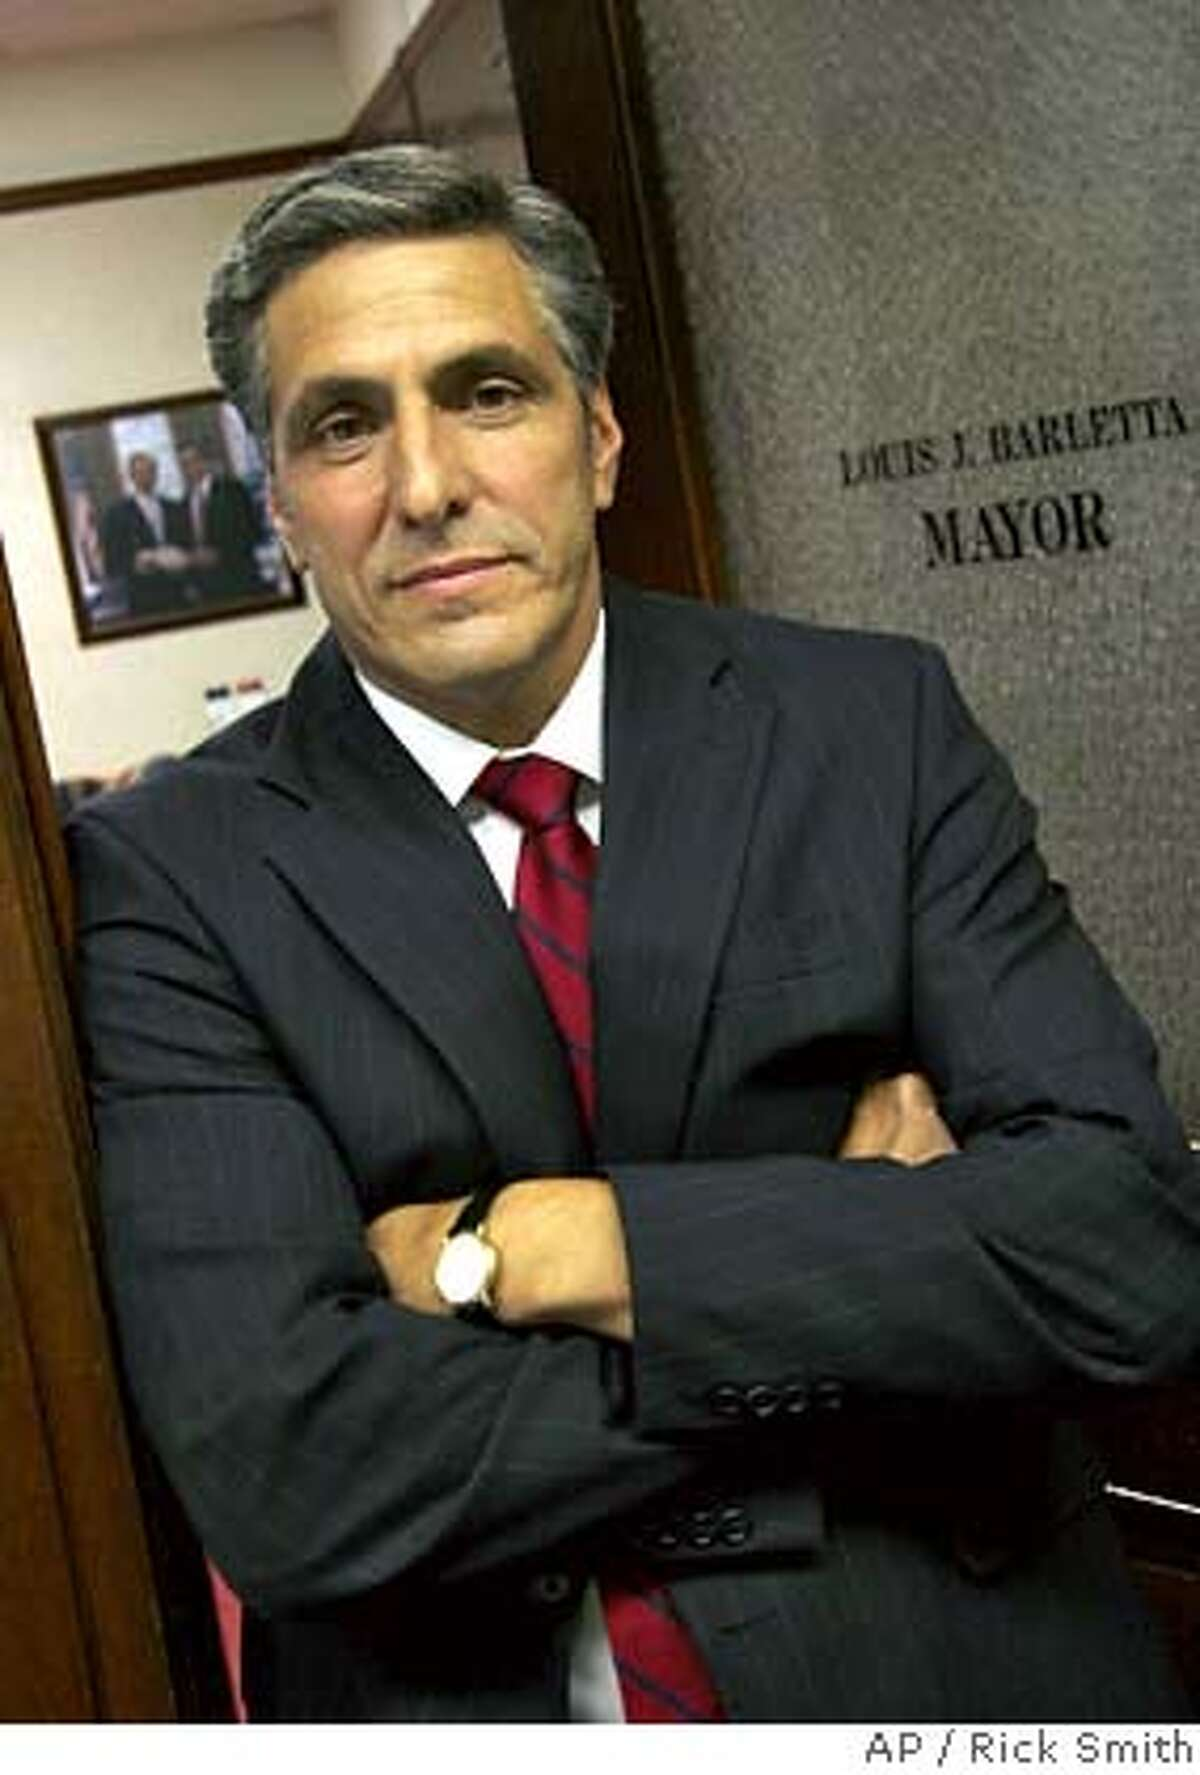 ** FILE ** Mayor Lou Barletta stands in his office June 14, 2006, in Hazleton, Pa. Hispanic groups sued Hazleton Tuesday, Aug. 15, 2006, over one of the toughest crackdowns on illegal immigrants by a U.S. city. (AP Photo/Rick Smith, File) JUNE 14, 2006 FILE PHOTO